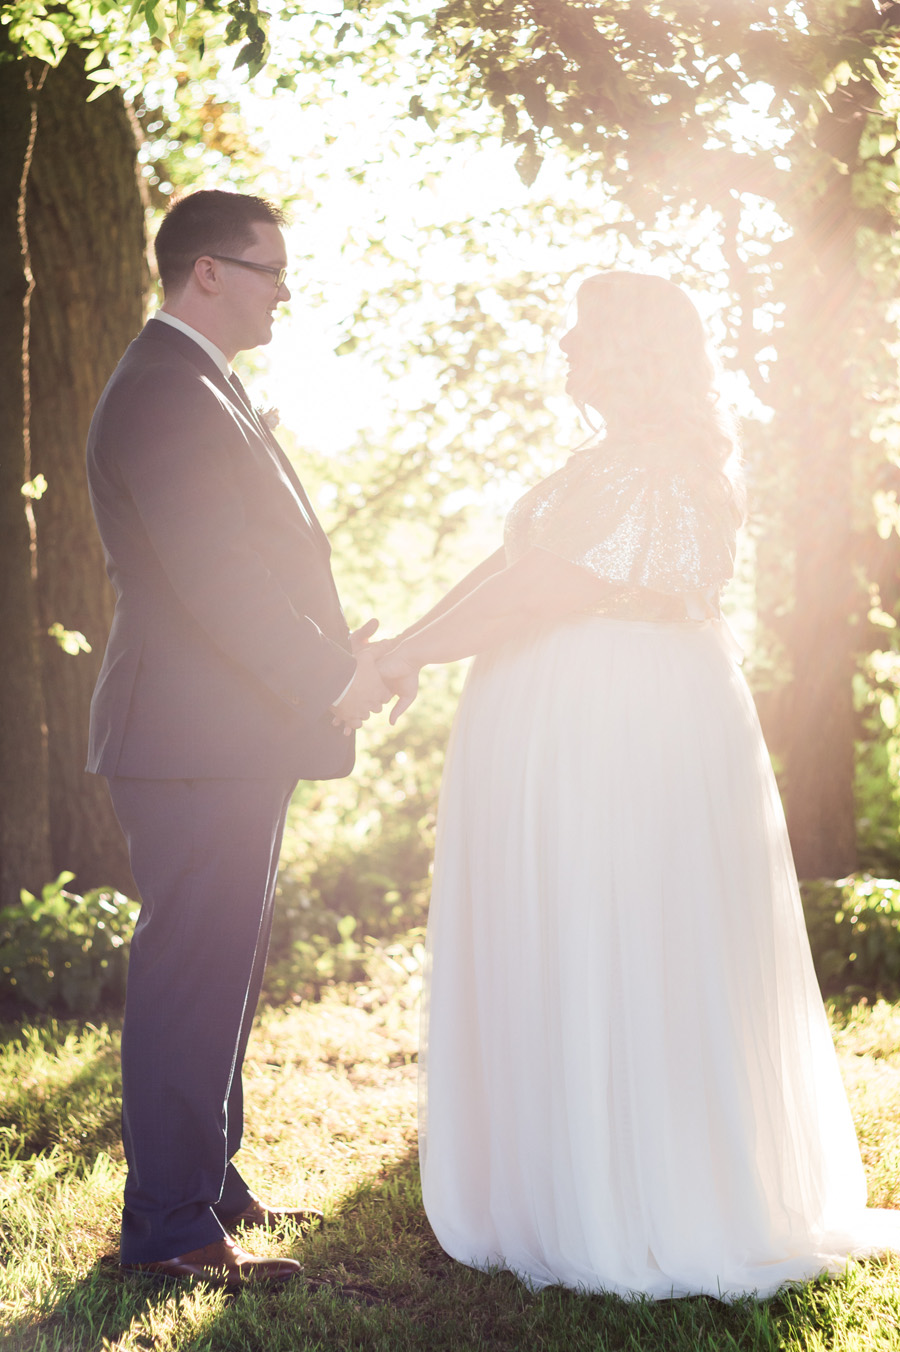 Bride and groom with sunset.